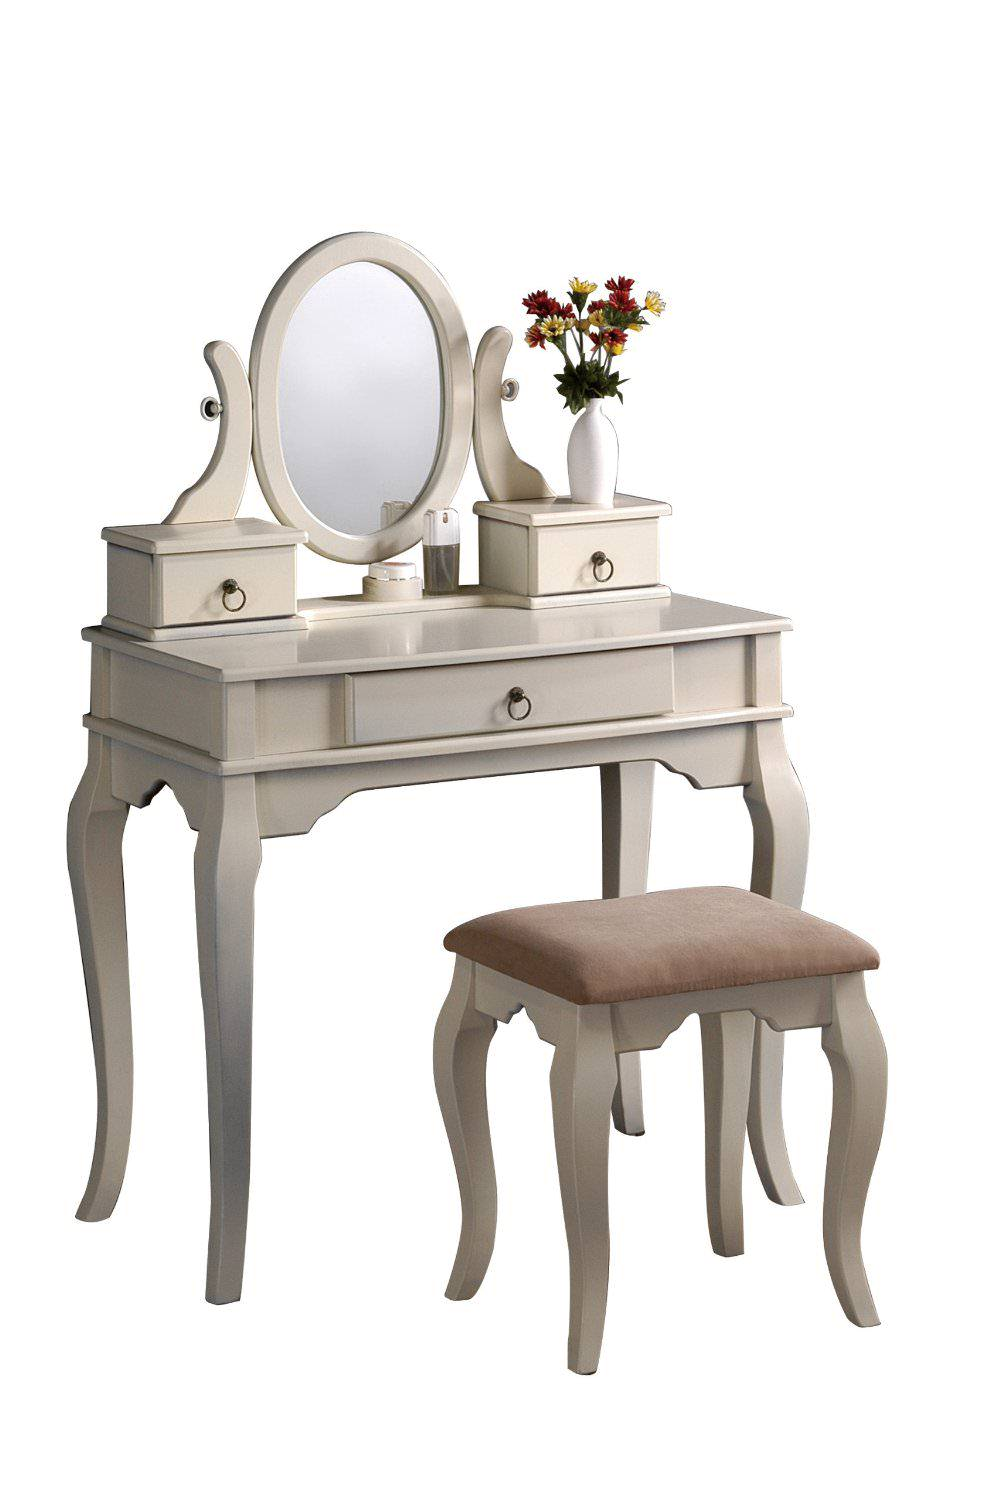 Small White Vanities For Bedroom (Image 9 of 10)